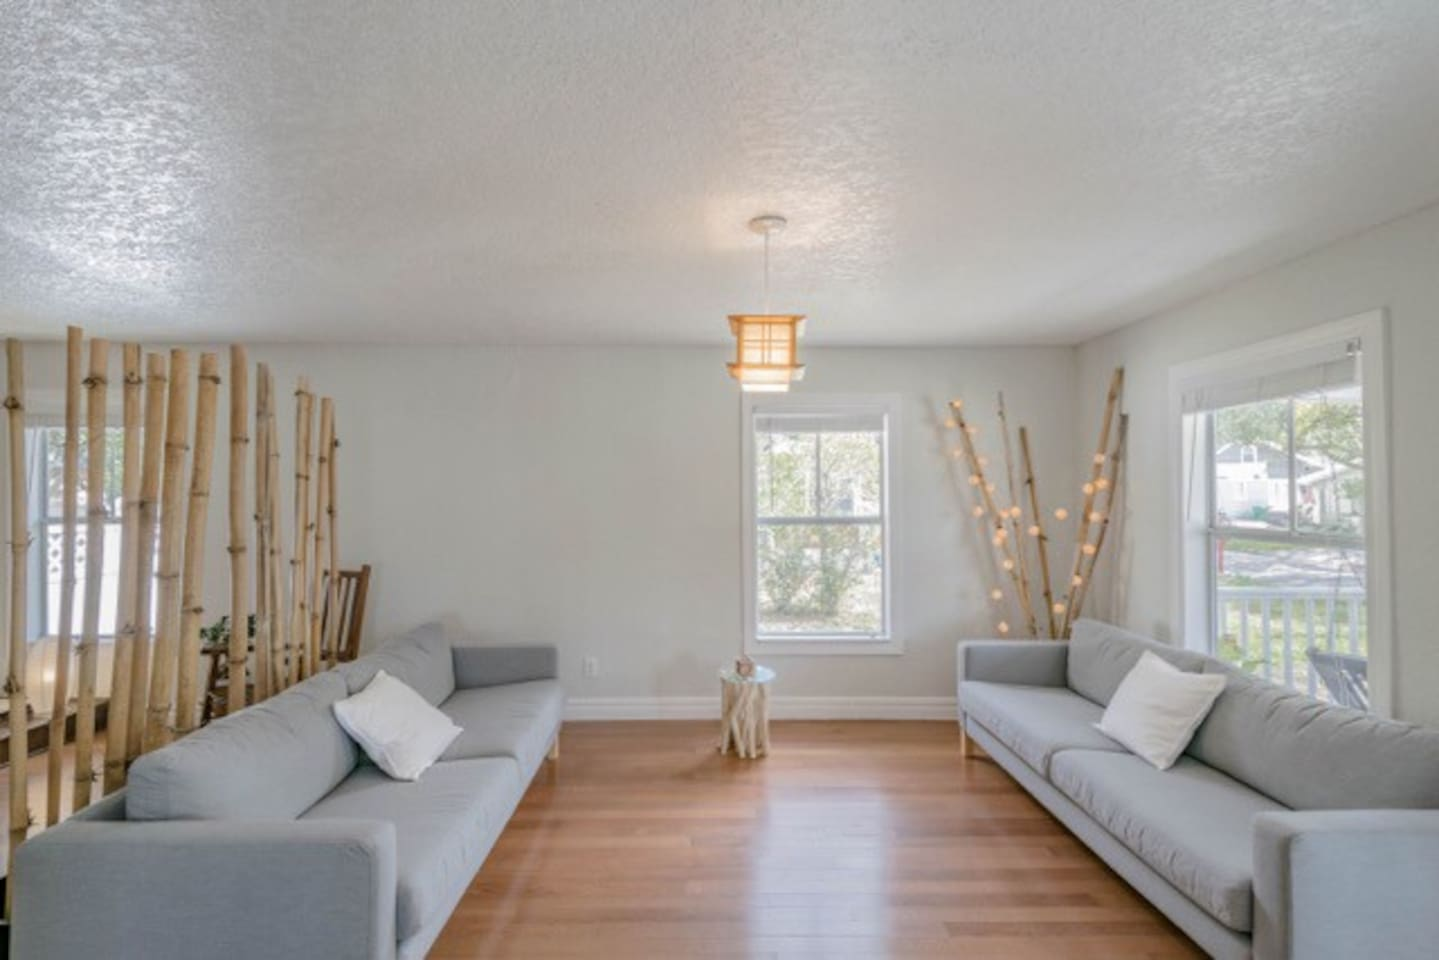 Modern and Zen Private Room in Heart of Tampa